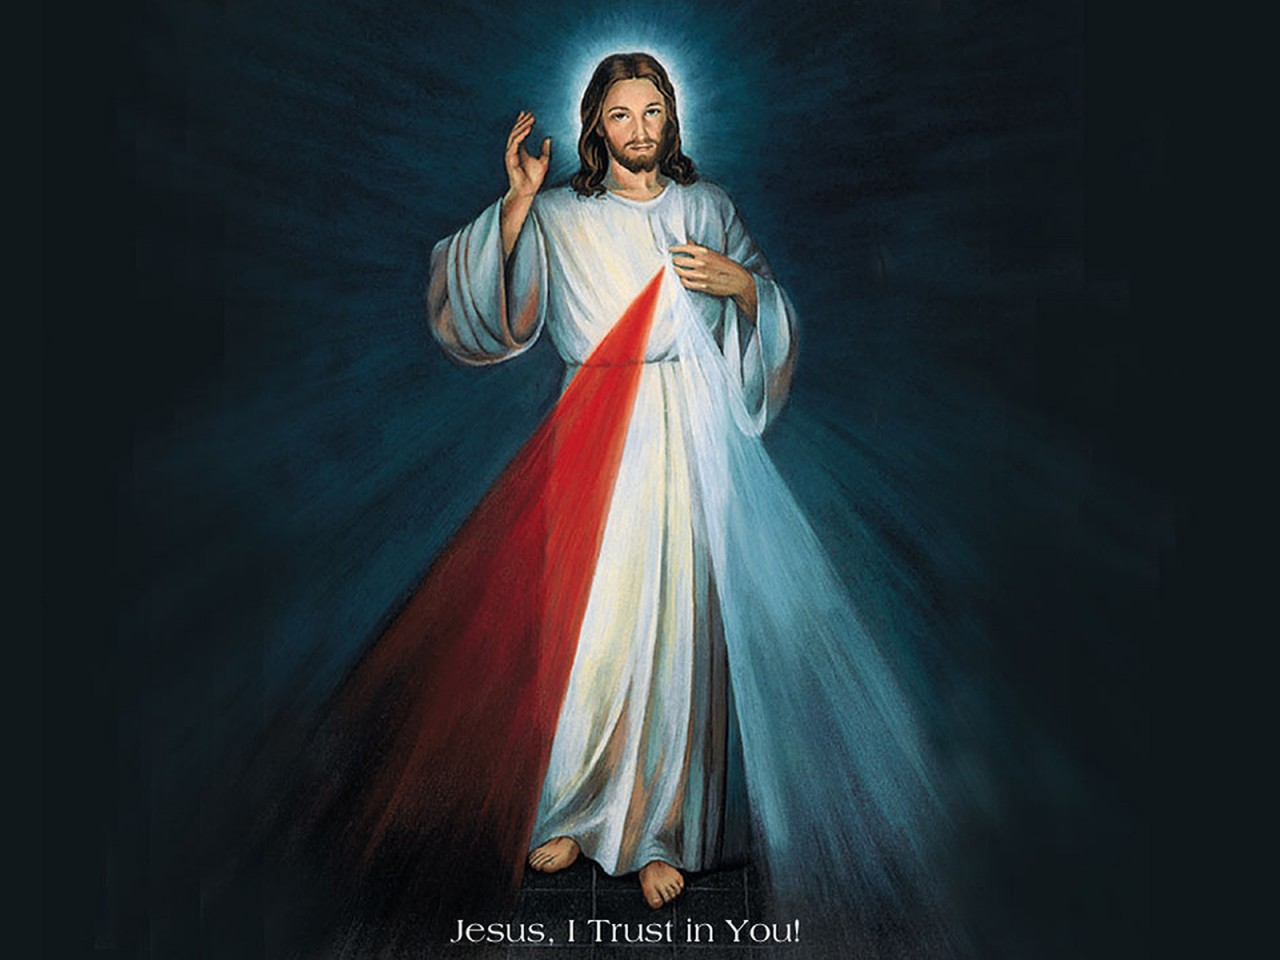 A Reflection On The 2nd Sunday In Easter - Divine Mercy Sunday                                                                                 By Fr Isidore Clarke, O.P.